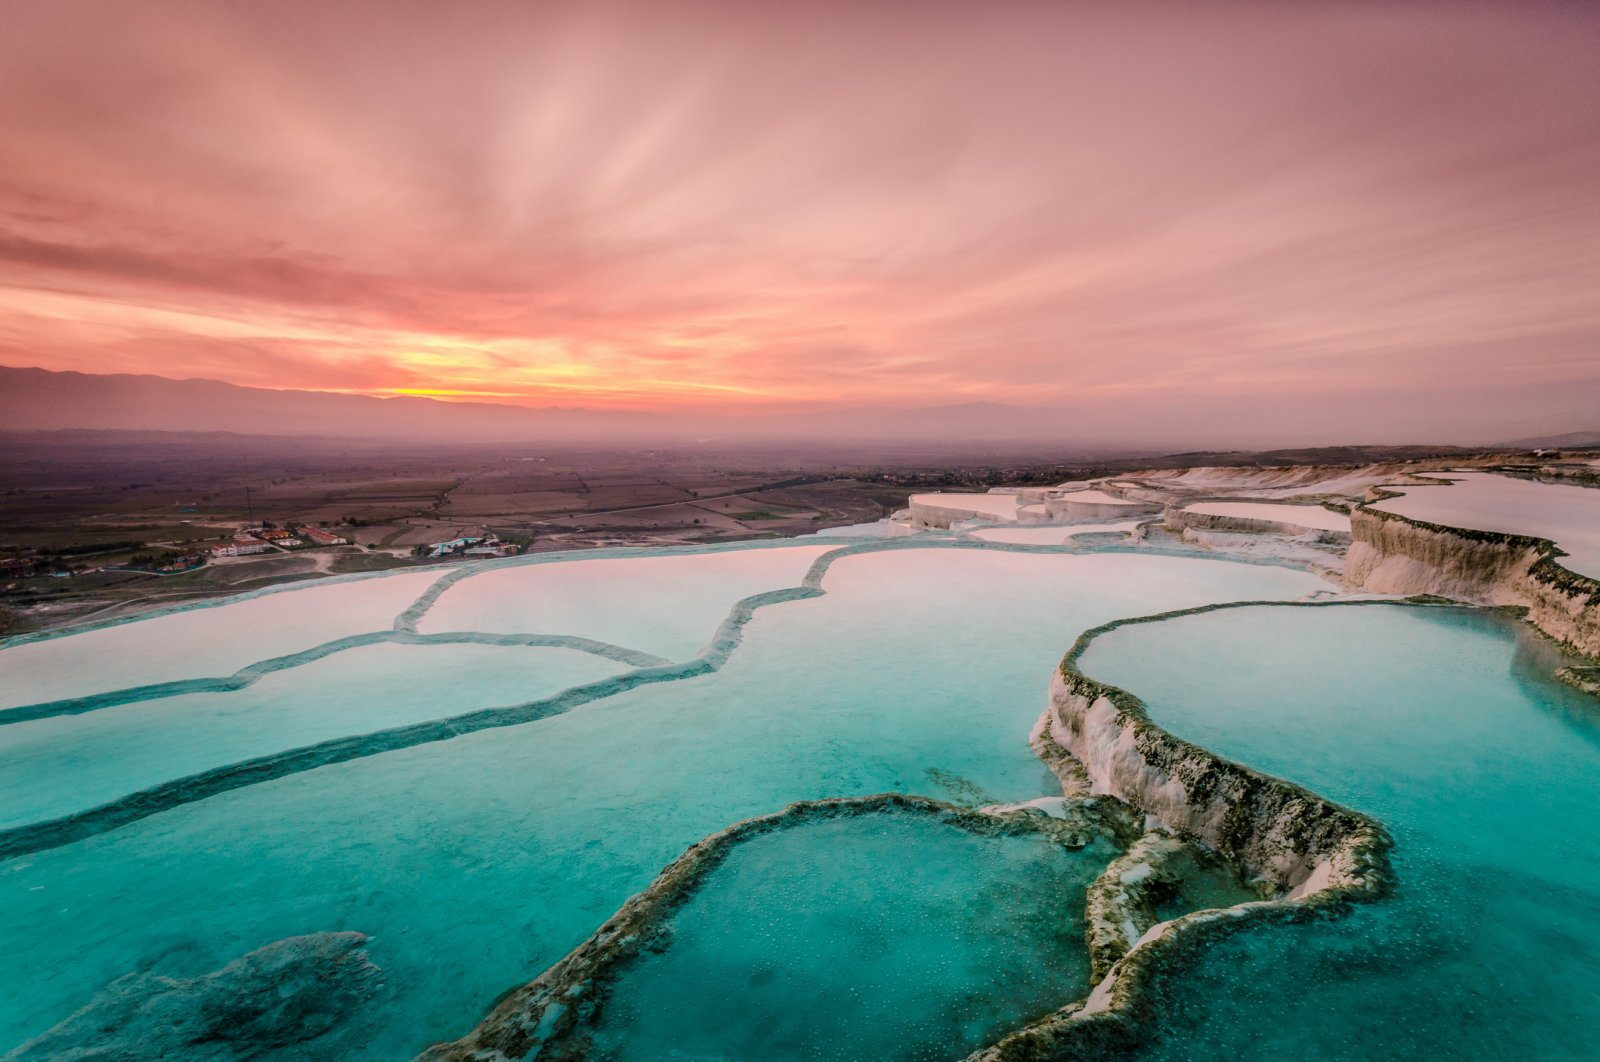 The natural pools created by the carbonate travertines are spectacular during sunset. (iStock Photo)